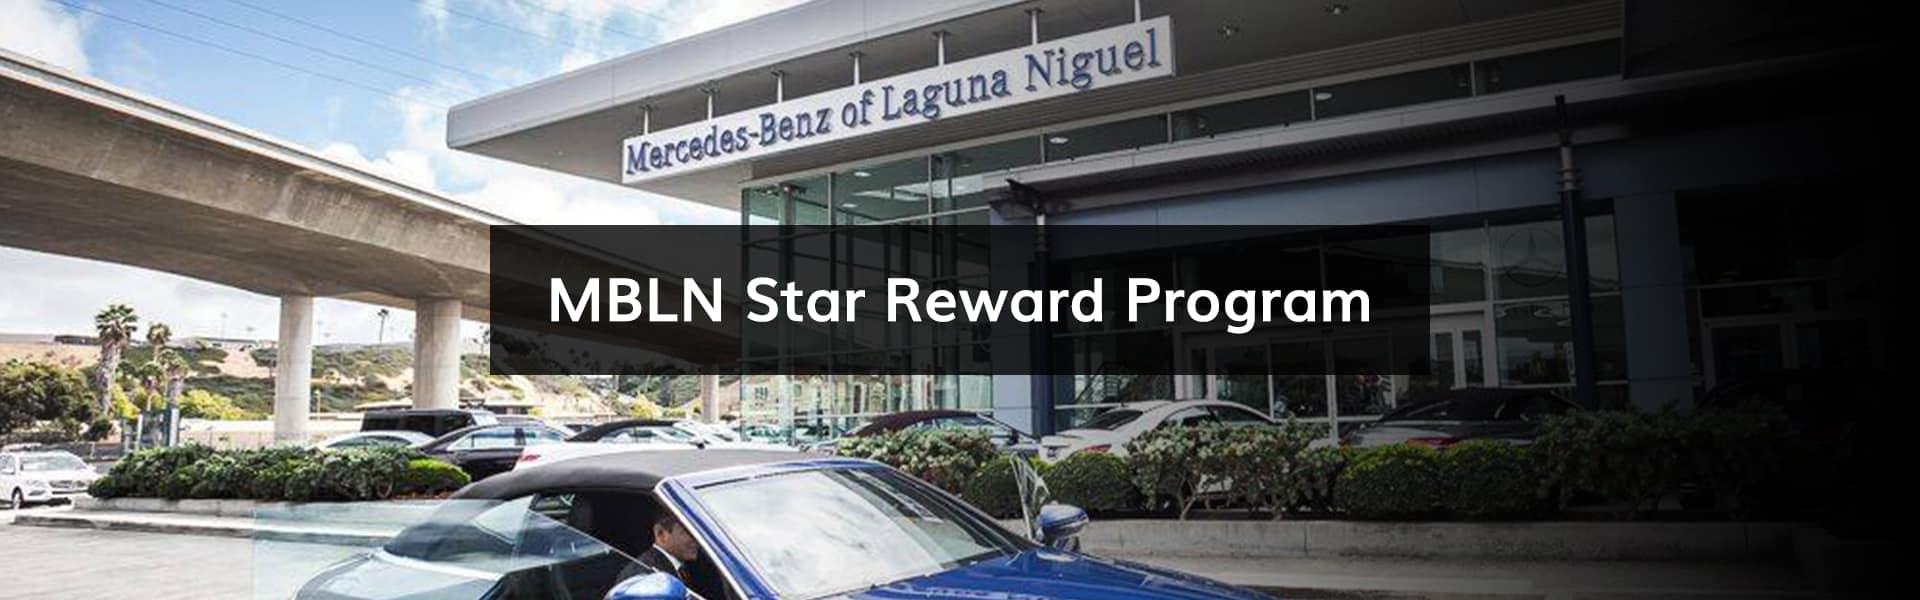 Exceptional Mercedes Benz Of Laguna Niguel Welcomes You To Our Exclusive STAR Member  Rewards Program